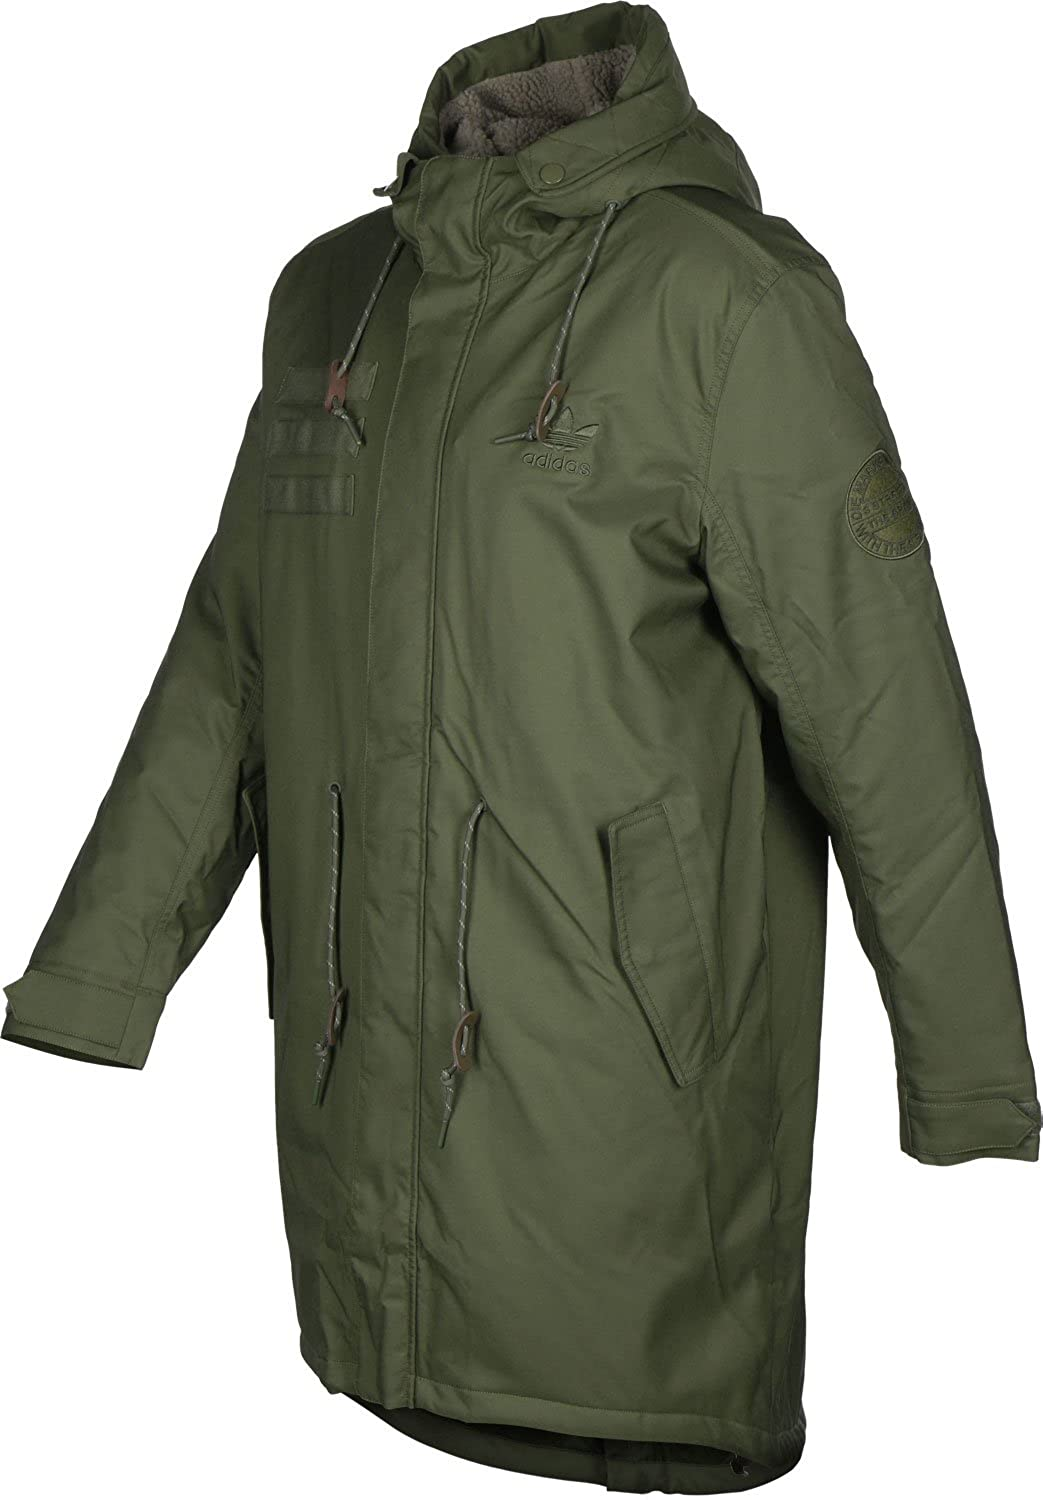 f105c3ee53a4 Adidas Quilted Fur Parka Jacket Men s